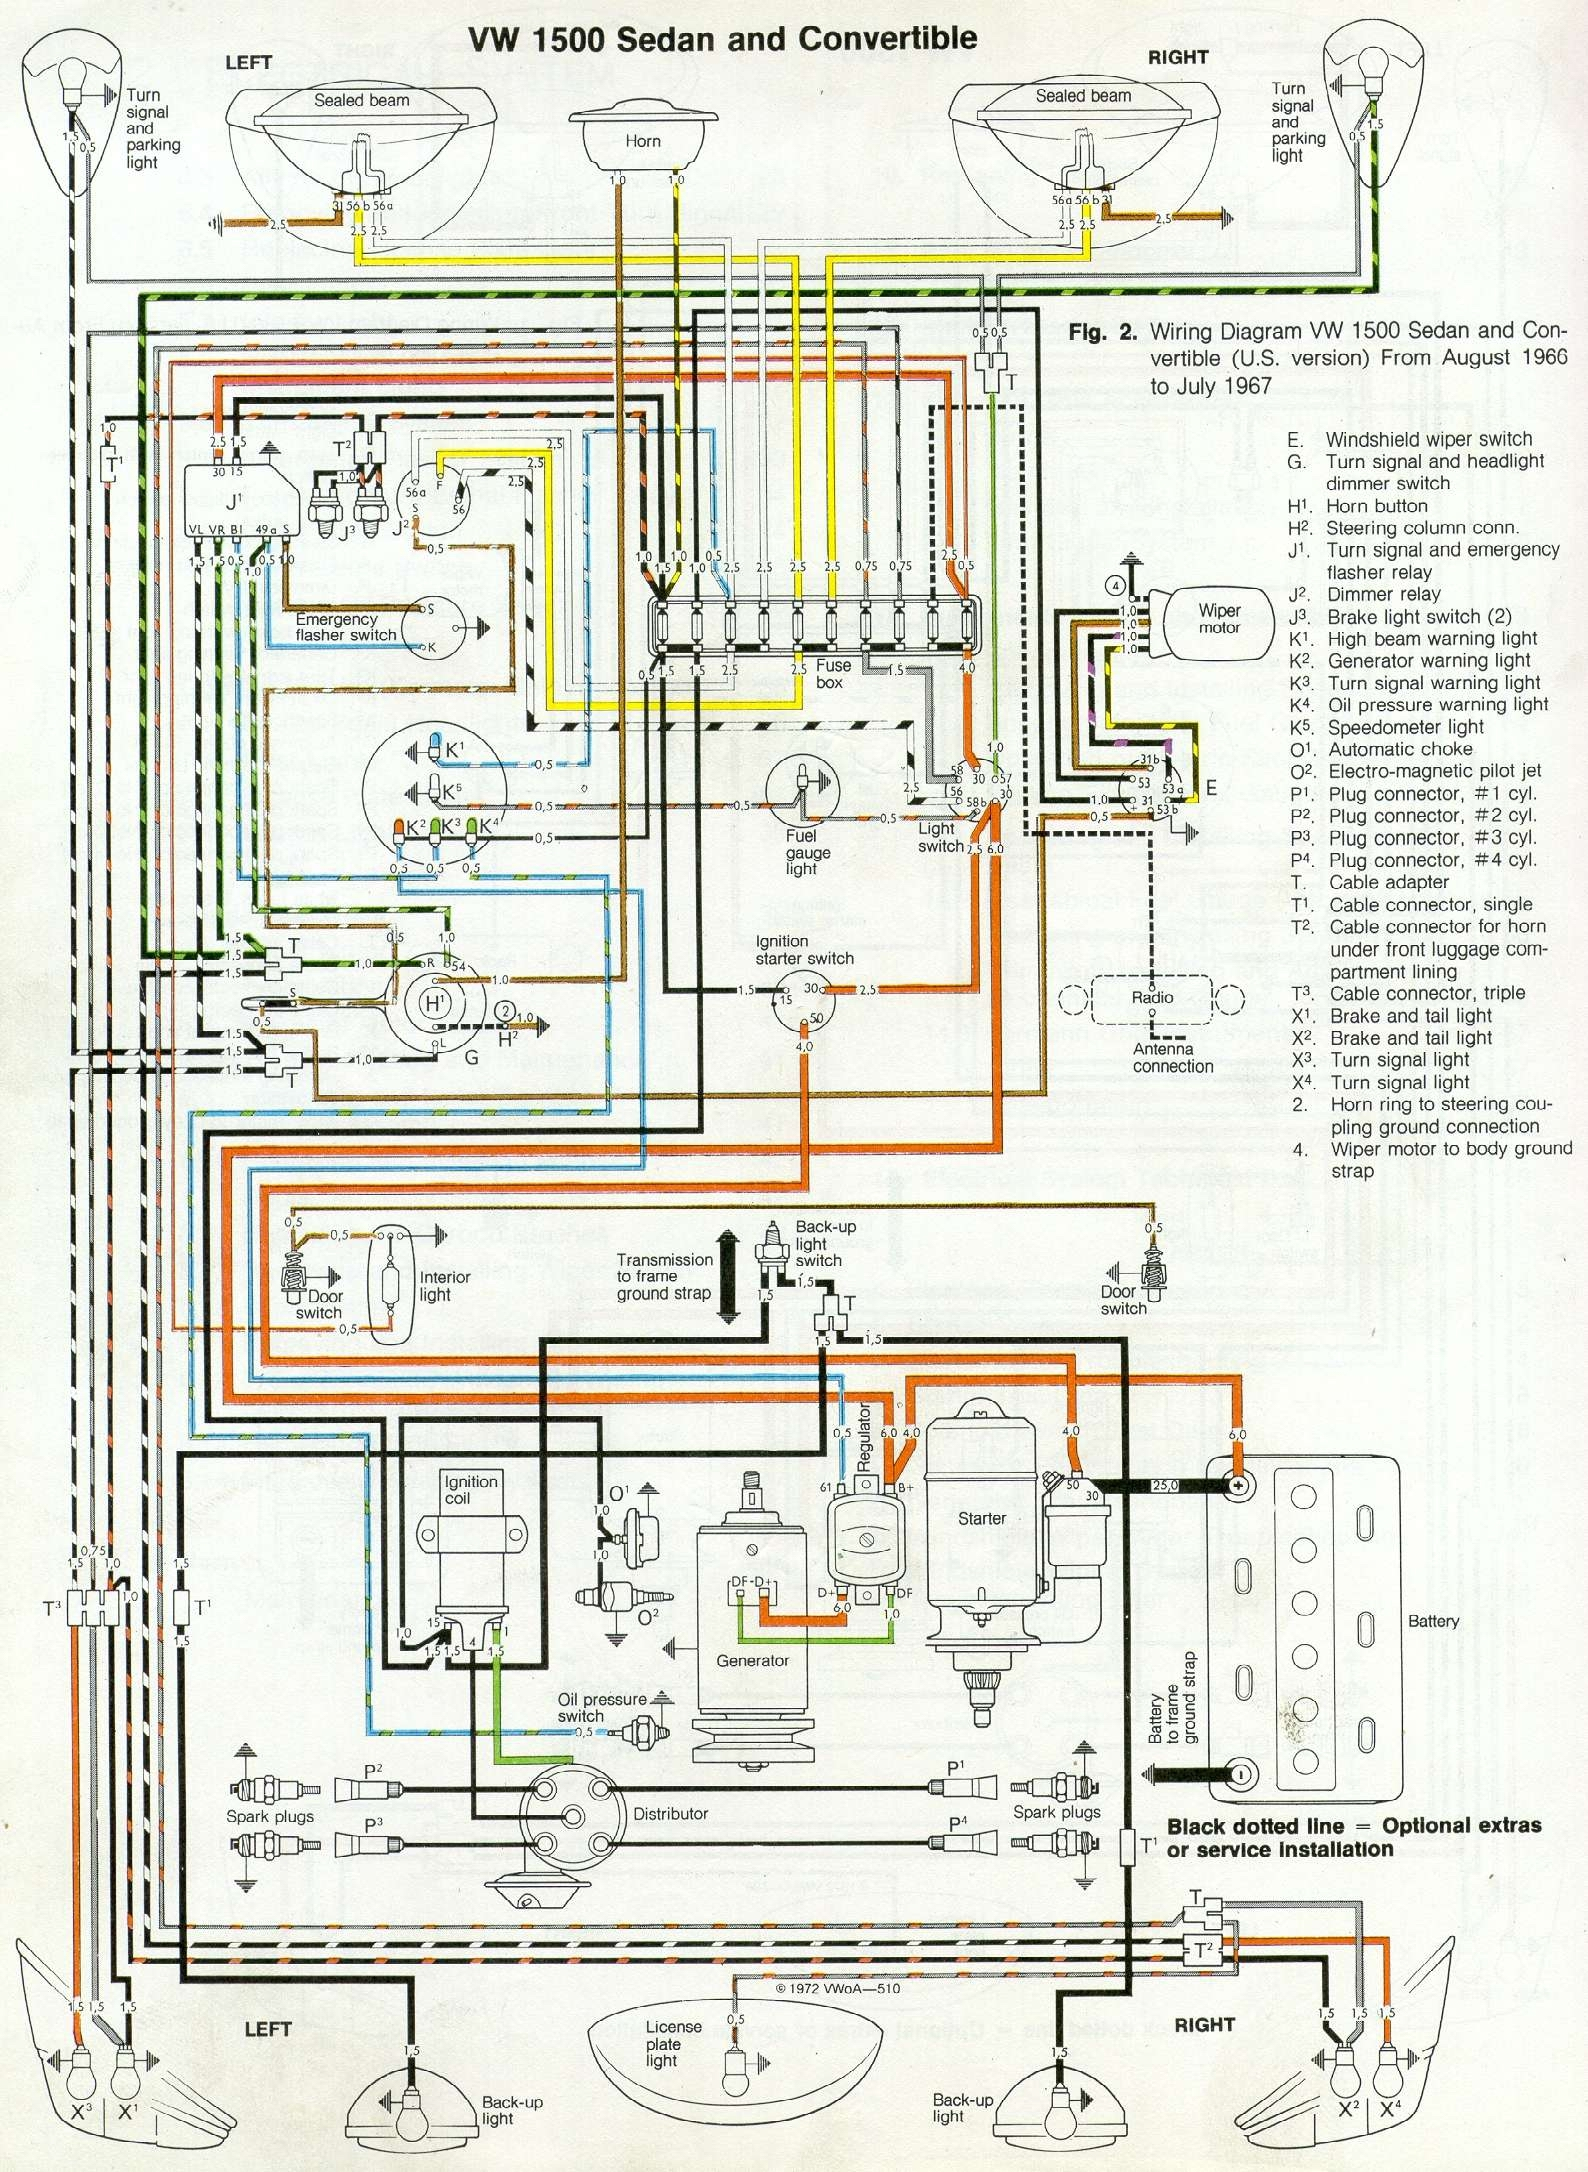 66 and 67 vw beetle wiring diagram 1967 vw beetle rh 1967beetle com vw beetle wiring diagram 1974 wiring diagram vw beetle alternator